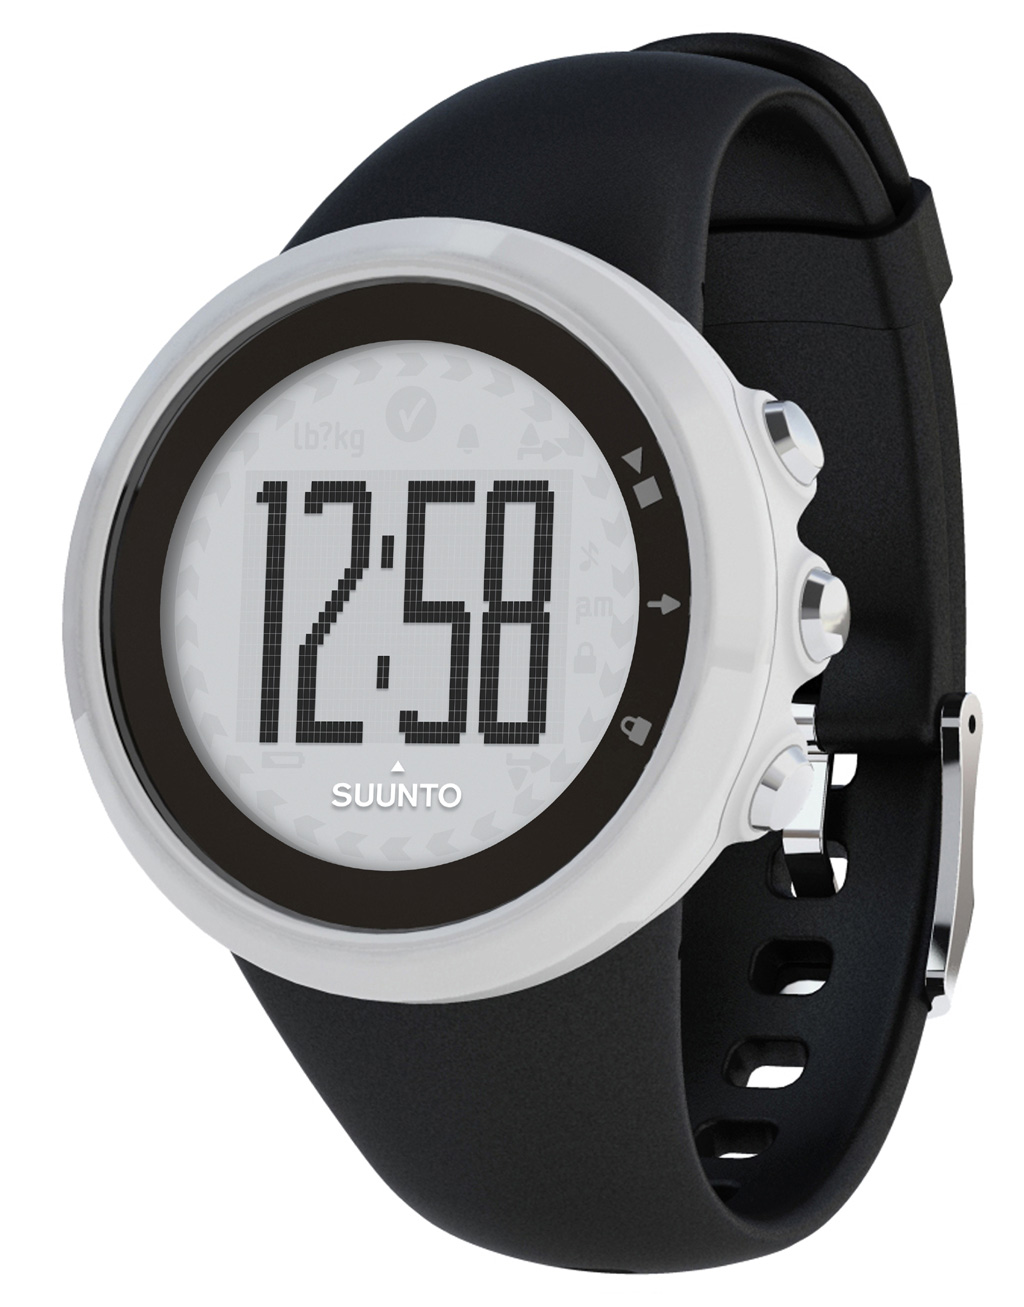 Športtester Suunto M1 Black Box